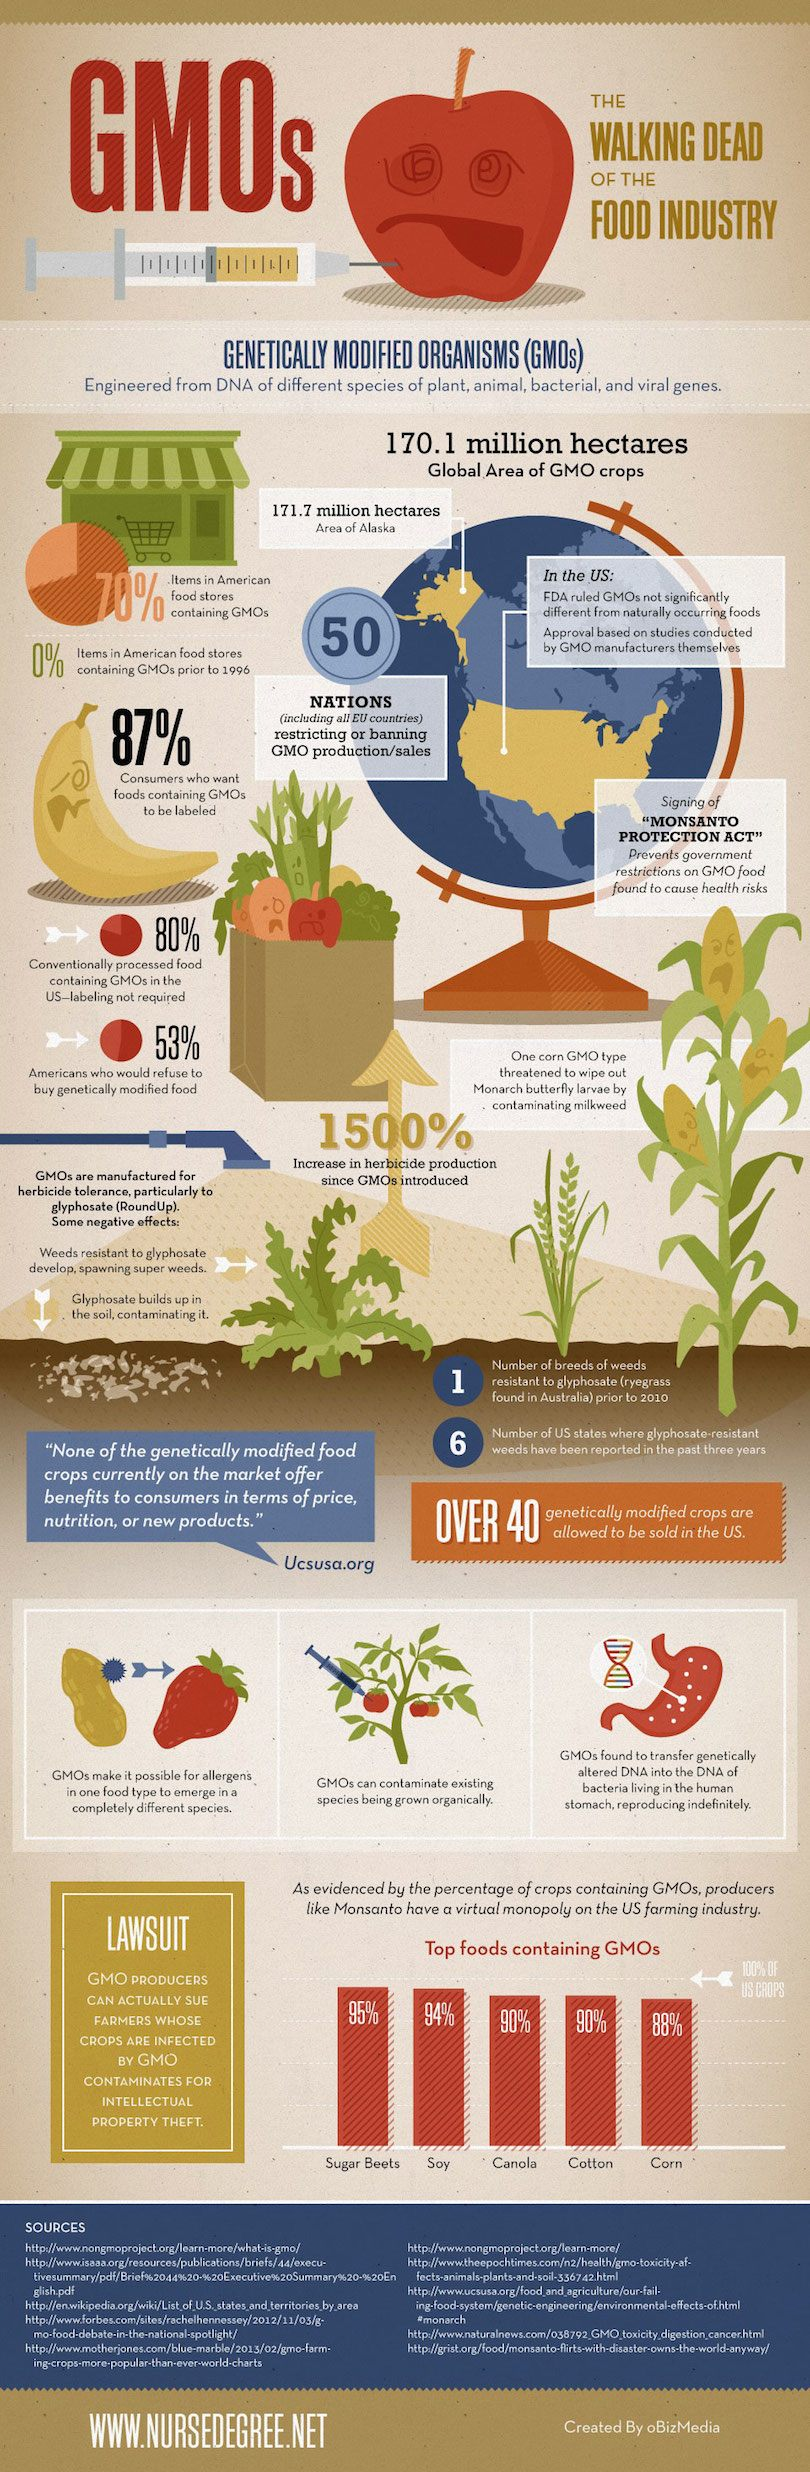 algaecal GMO infographic